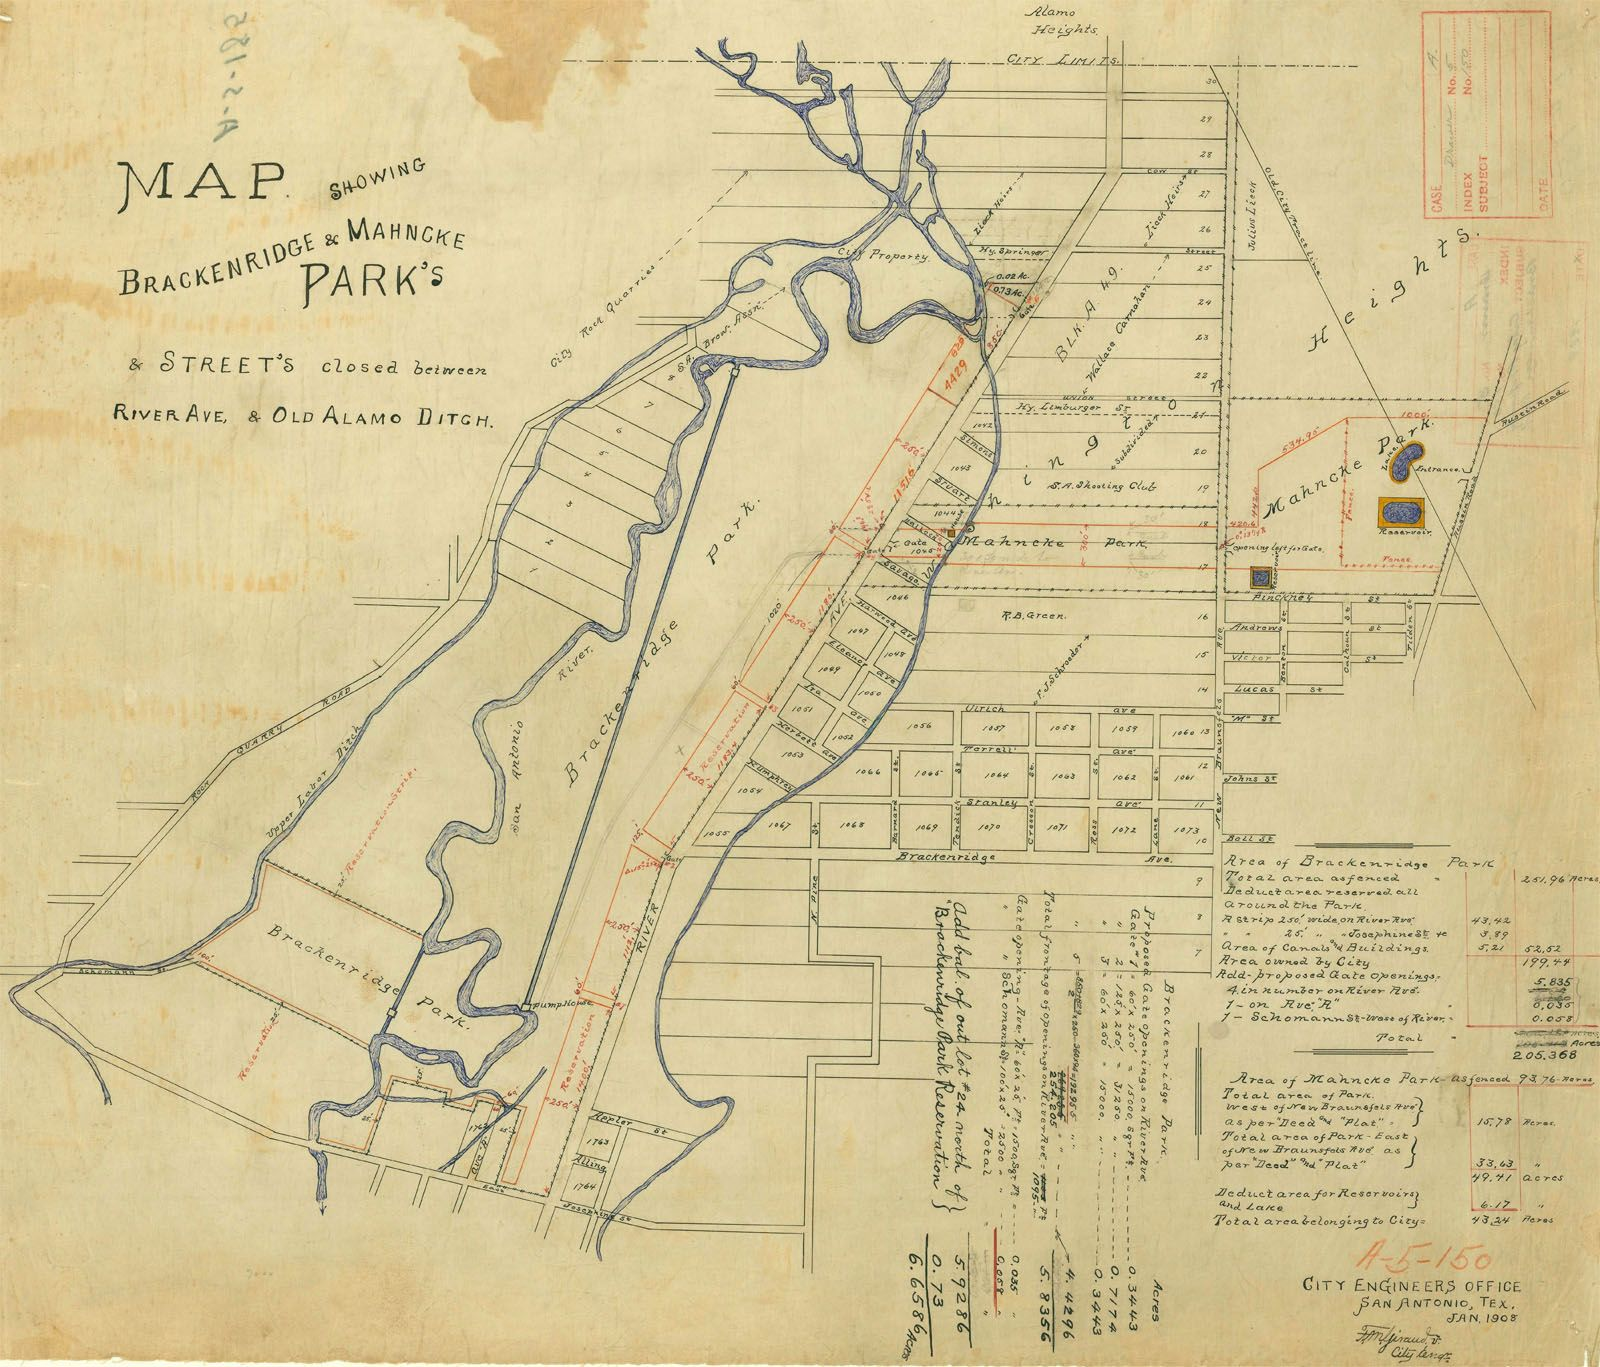 1908 Map Of Breckenridge Park And San Antonio Spring